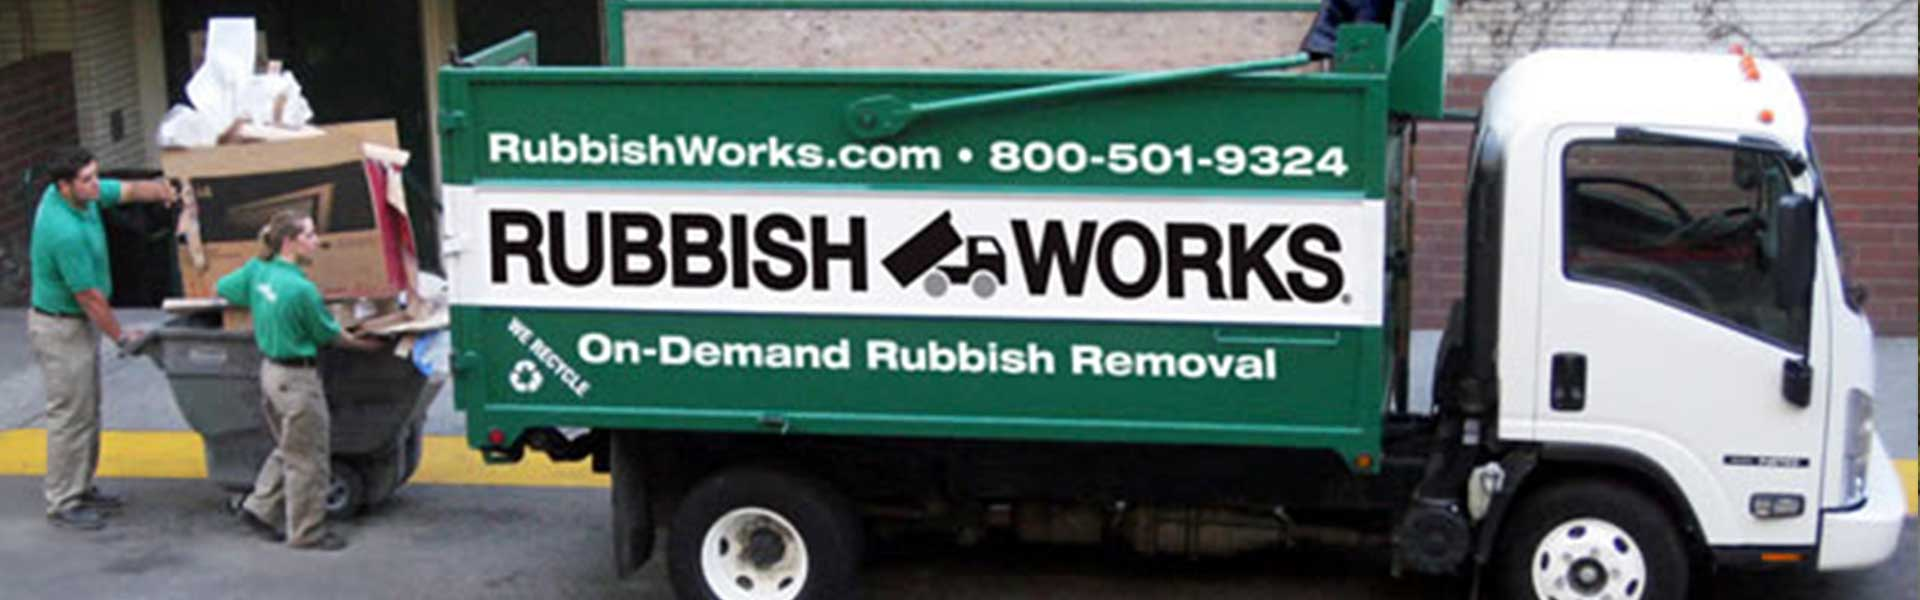 on demand junk removal services